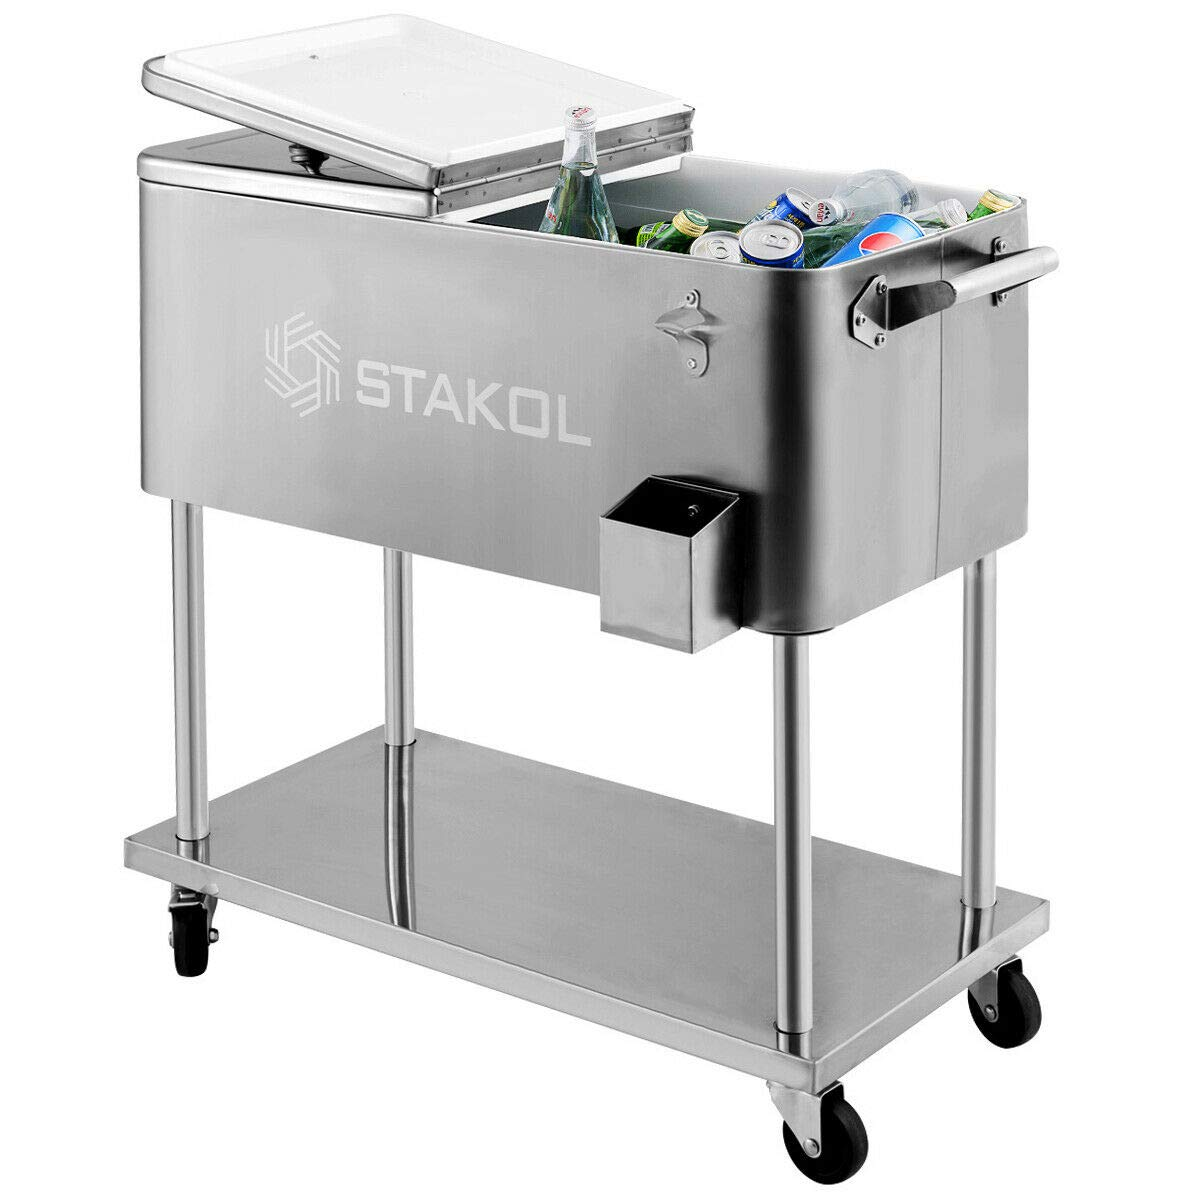 Giantex 80 Quart Patio Cooler Rolling Cooler Ice Chest with Shelf, Wheels and Bottle Opener, Stainless Steel Ice Chest Portable Patio Party Drink Cooling Cart (Sliver)